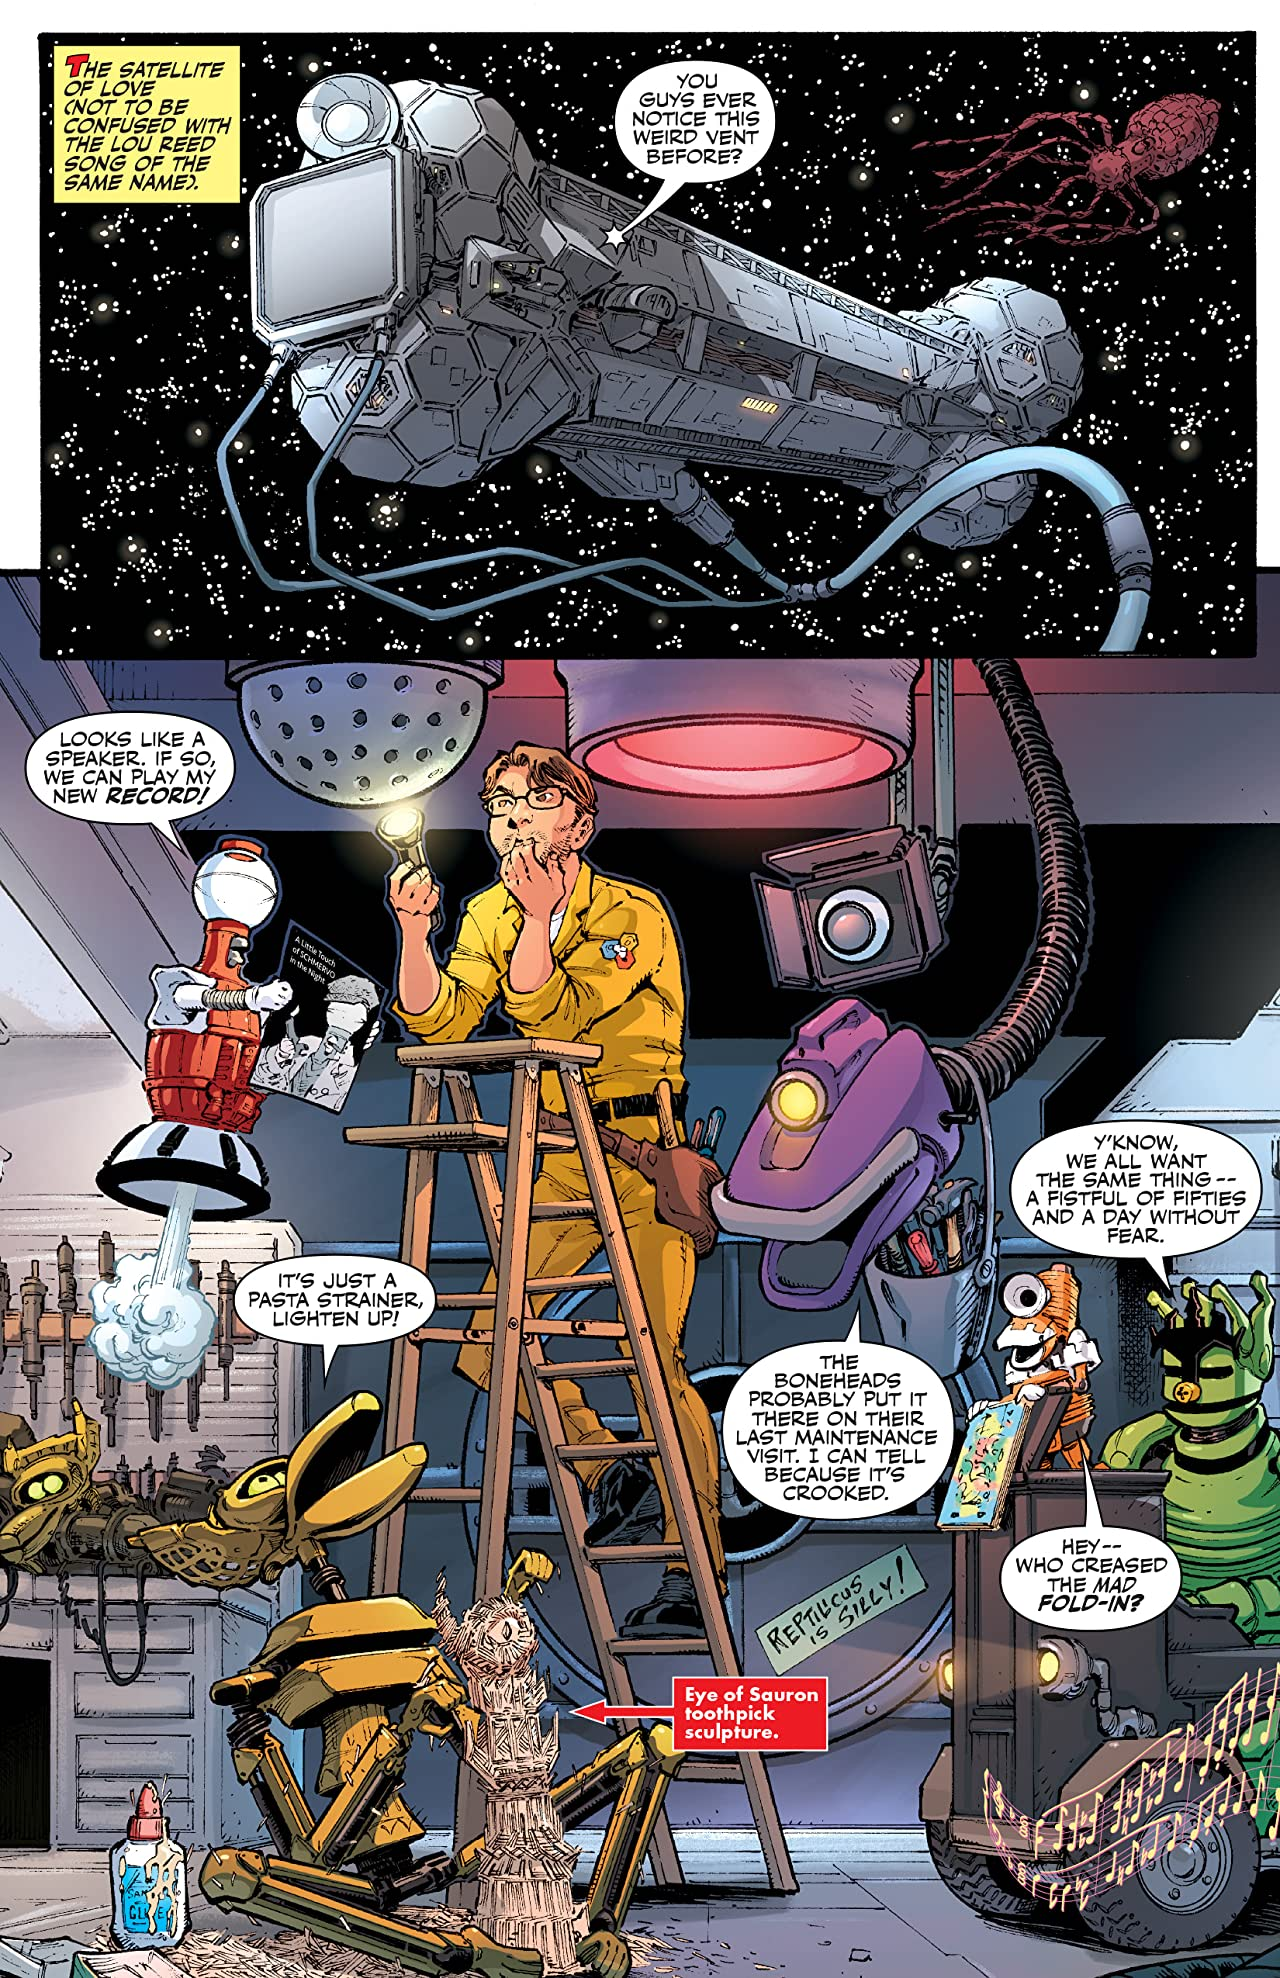 Mystery Science Theater 3000 Ashcan